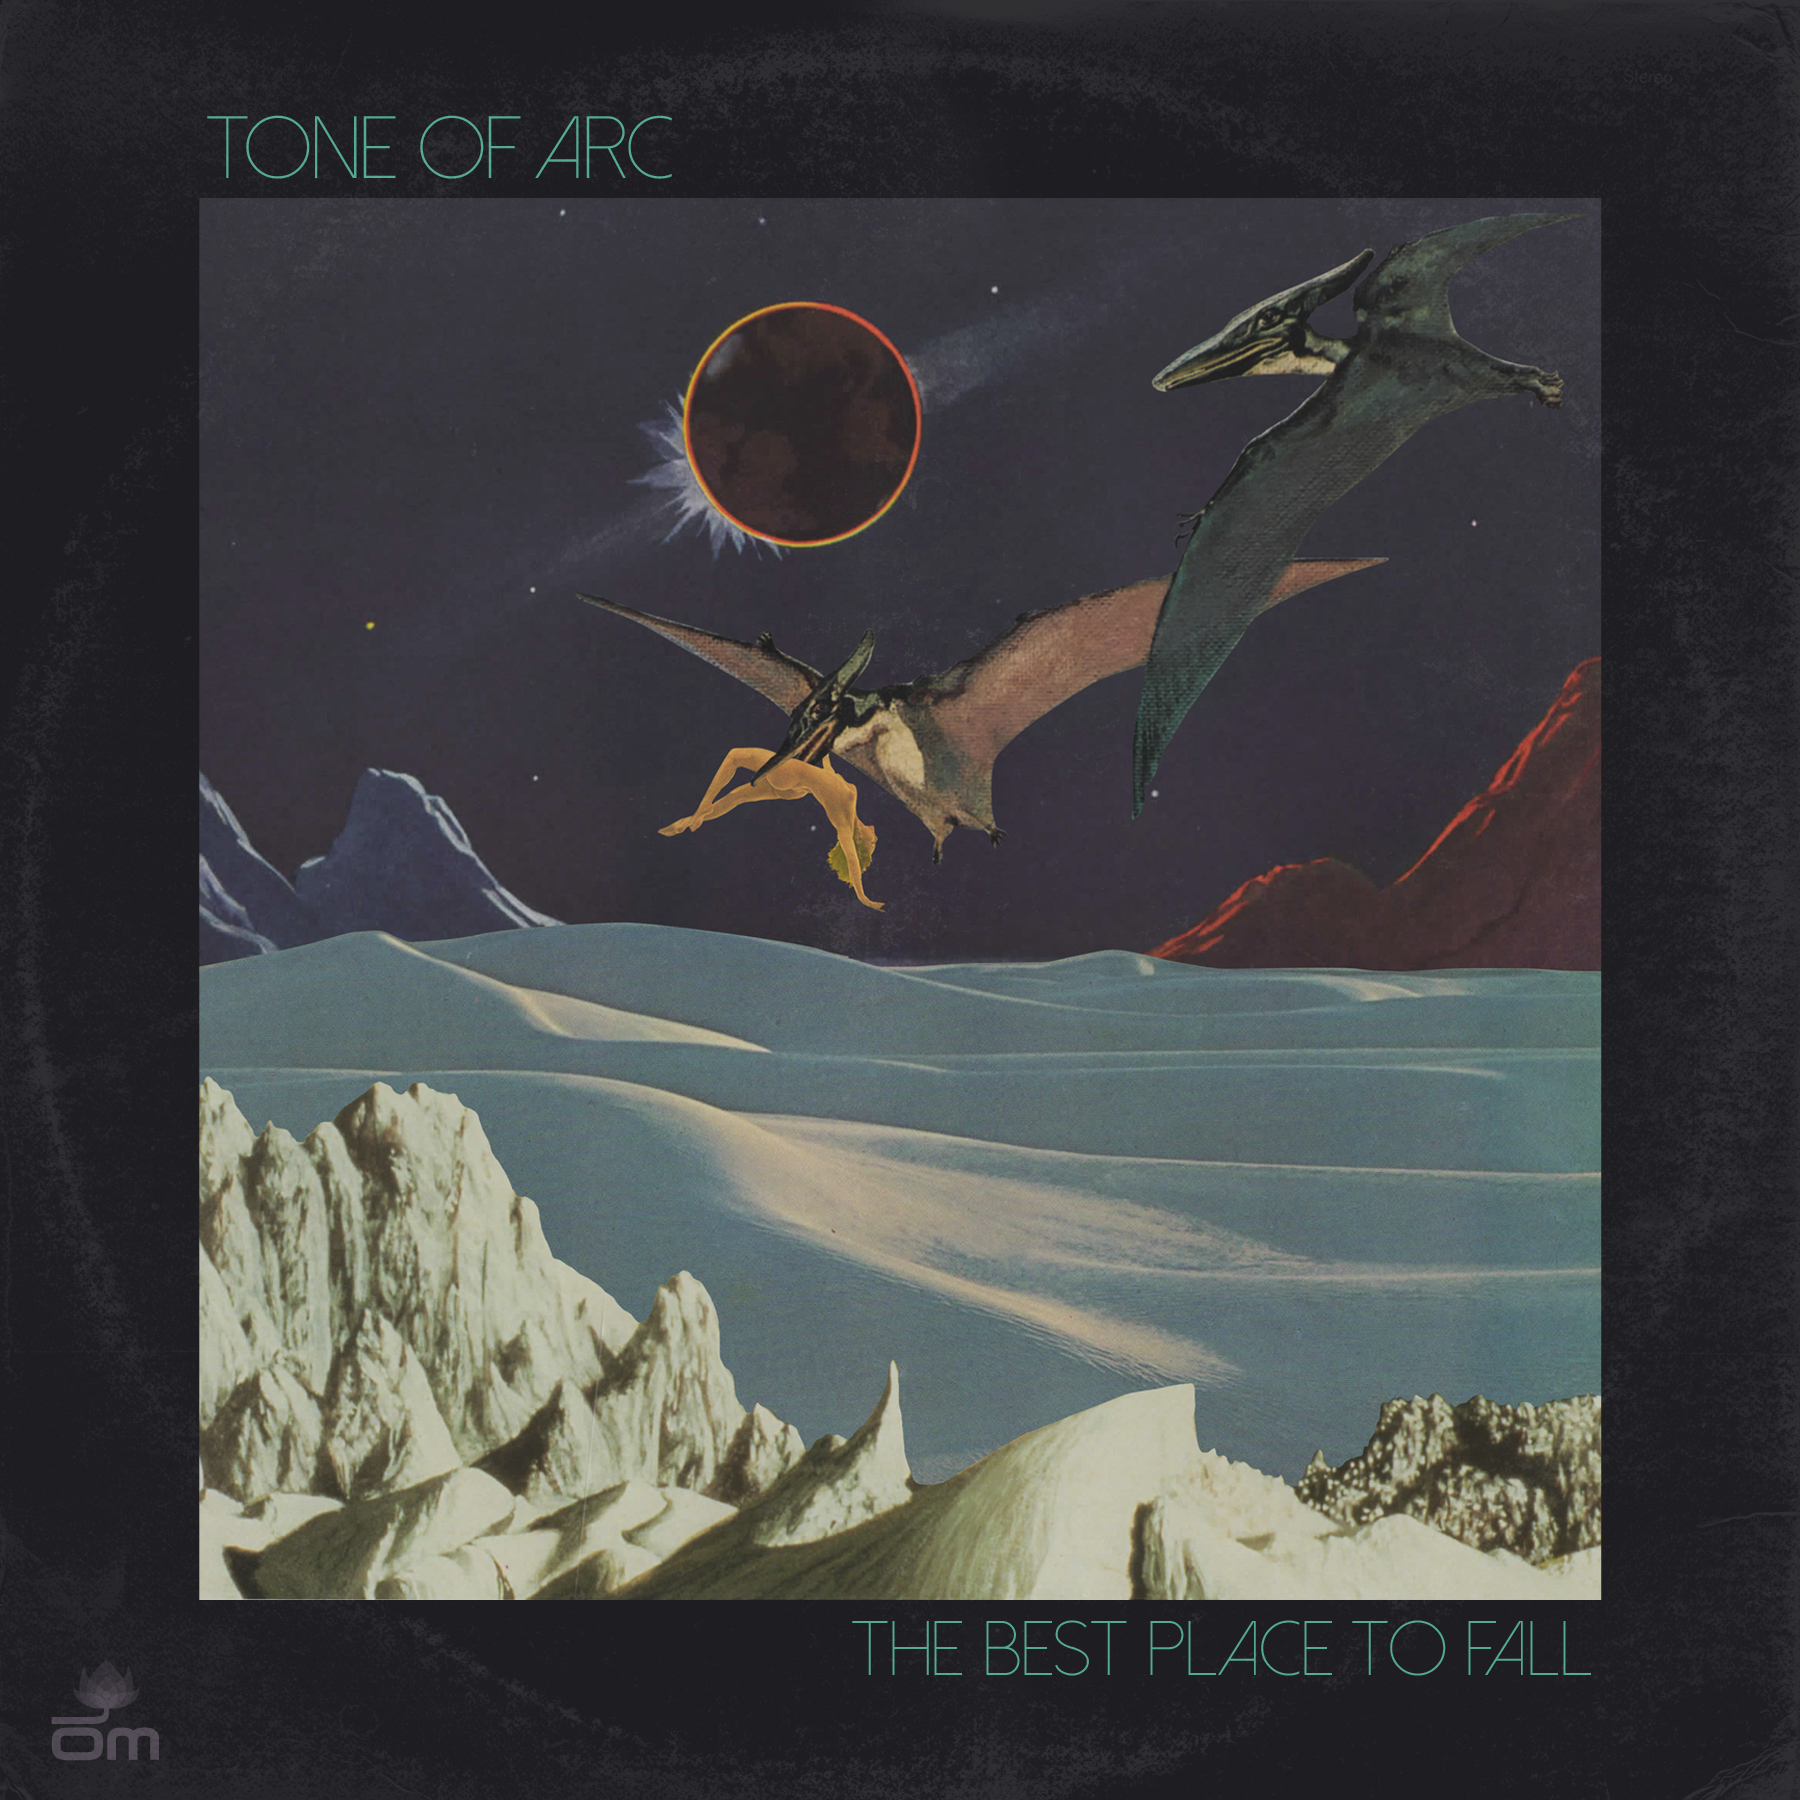 Tone of Arc - The Best Place to Fall